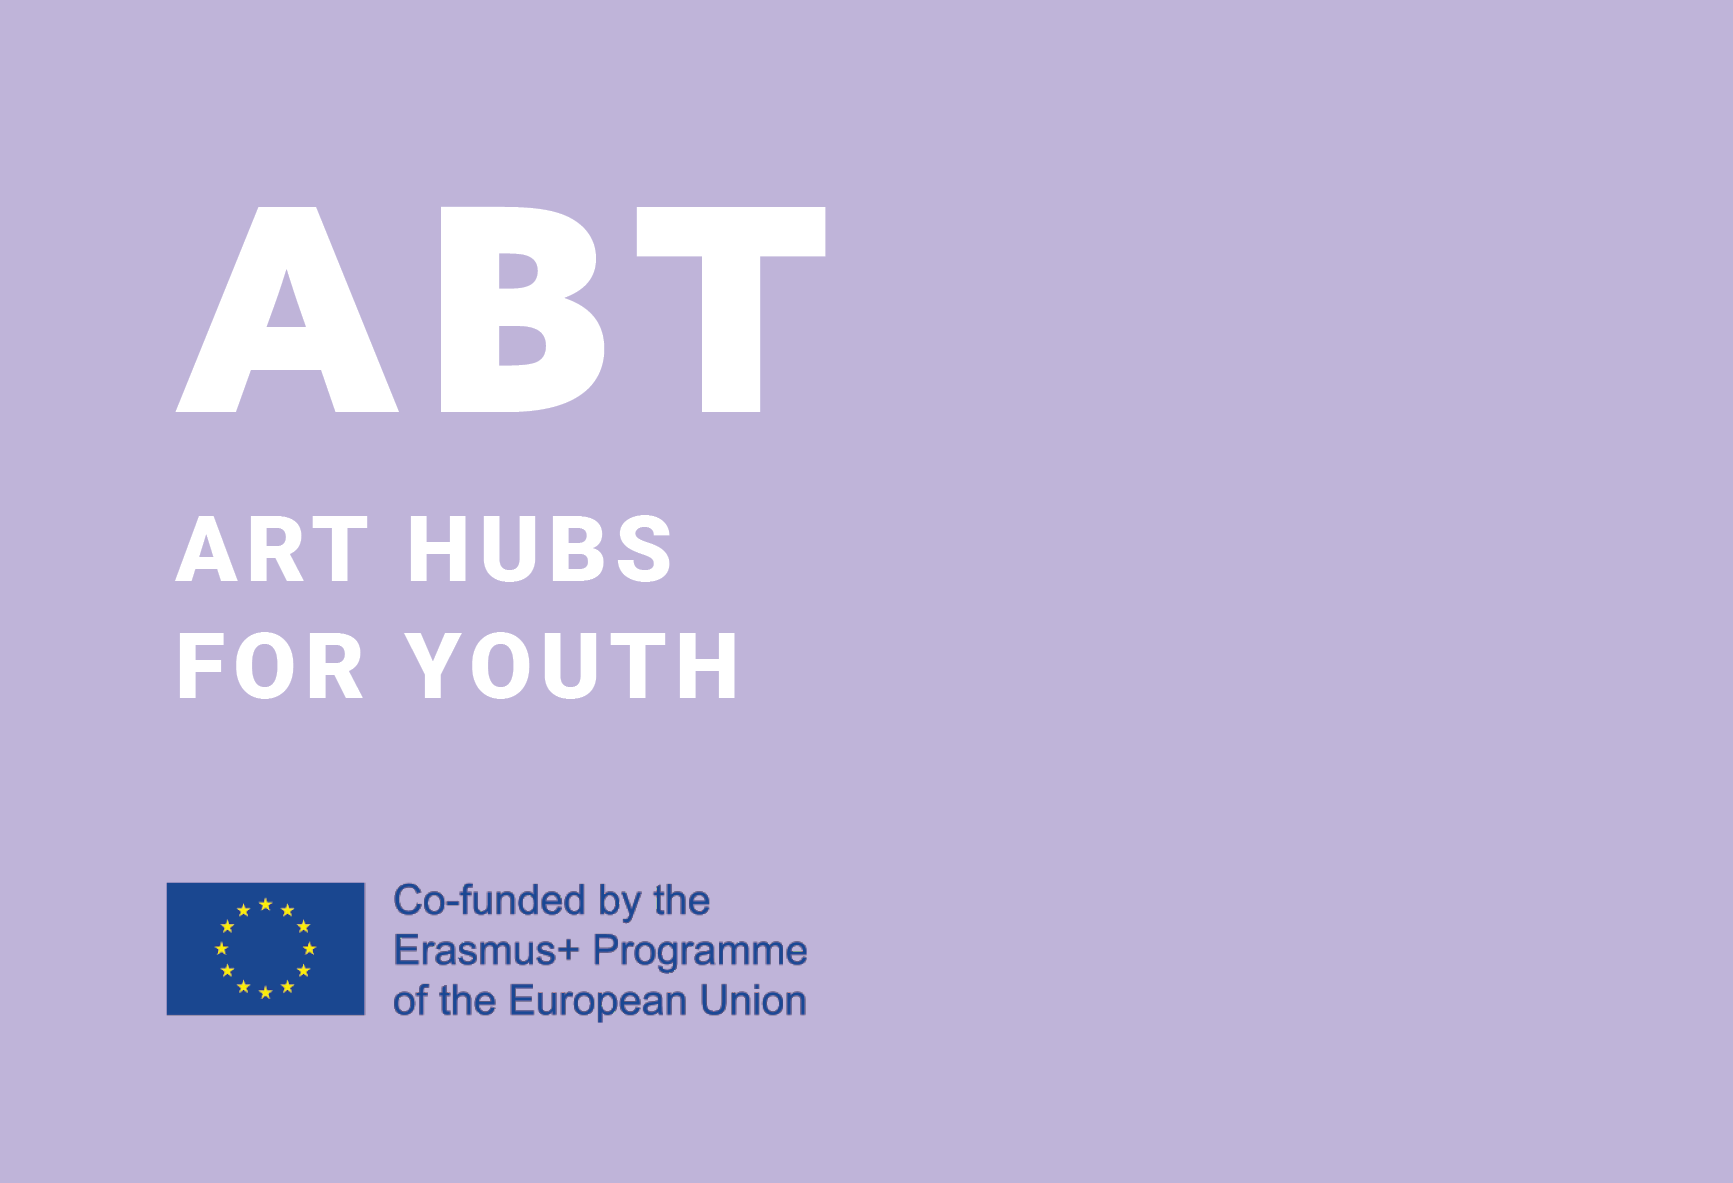 Art Hubs for Youth